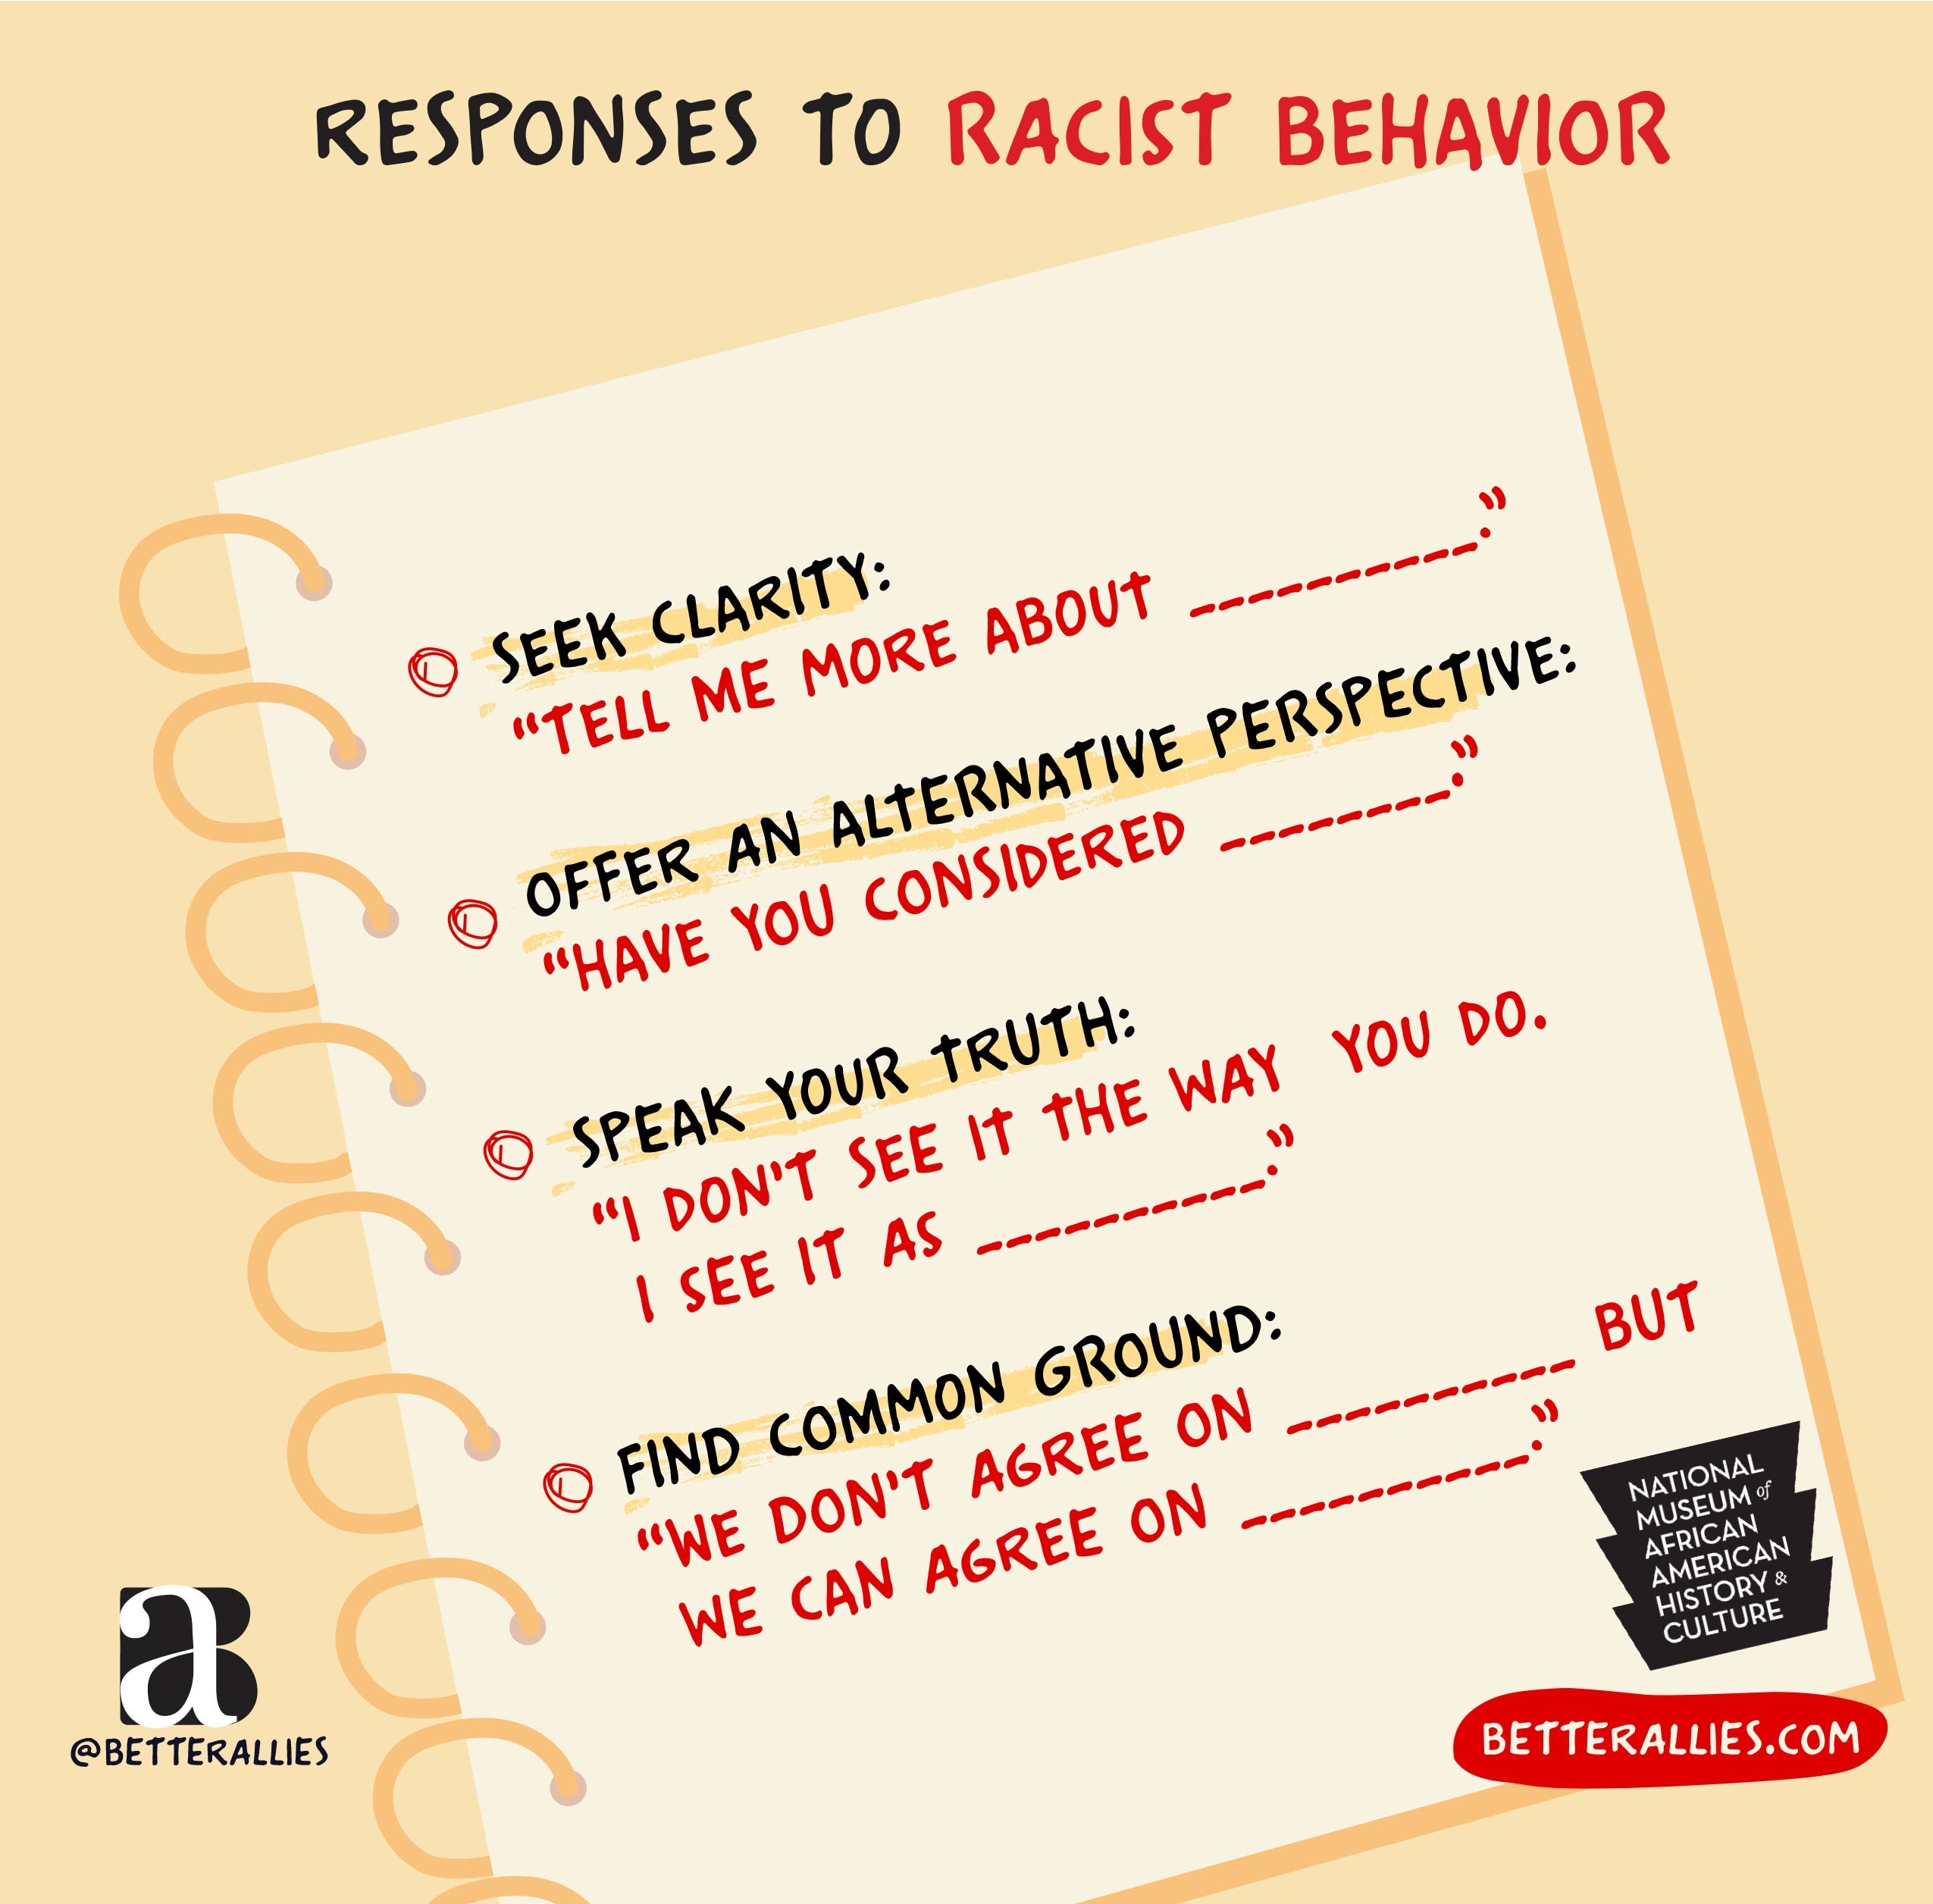 """Illustration titled Responses to Racist Behavior. There is a spiral notebook page with 4 points. Seek clarity: """"Tell me more about __."""" Offer an alternative perspective: """"Have you ever considered __."""" Speak your truth: """"I don't see it the way you do. I see it as __."""" Find common ground: """"We don't agree on __ but we can agree on __."""" The page has the National Museum of African American History & Culture. In the lower corners are the better allies logo and a red bubble with betterallies.com"""